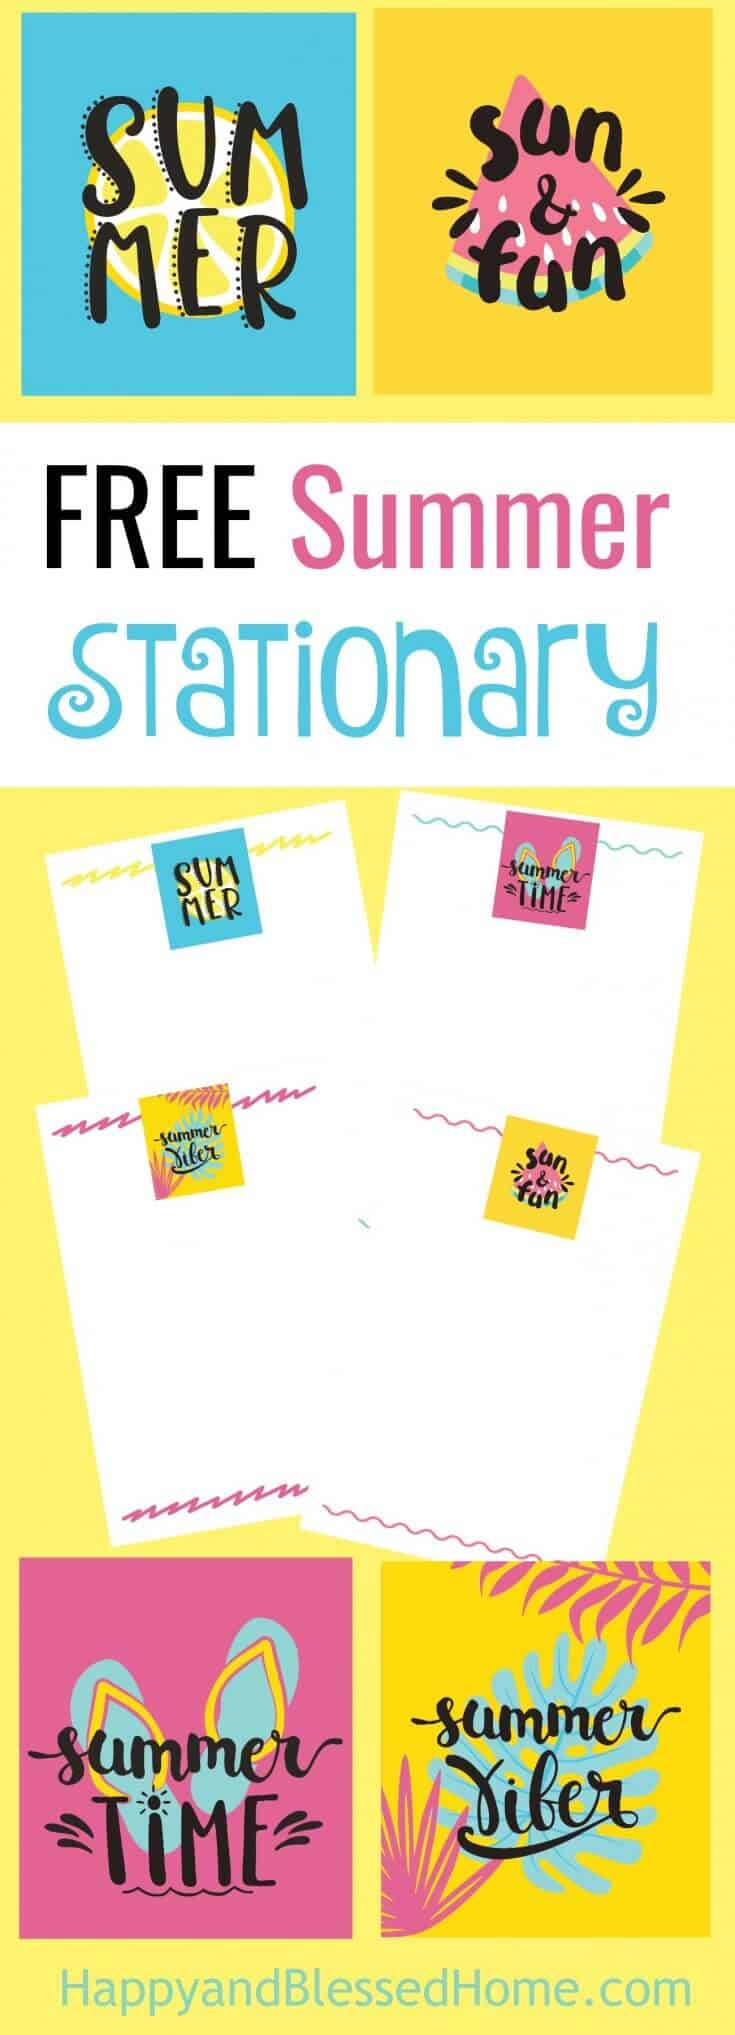 FREE-Summer-Stationary-4-Desogns-Perfect-for-Journaling-and-Capturing-Summer-Memories-735x2035